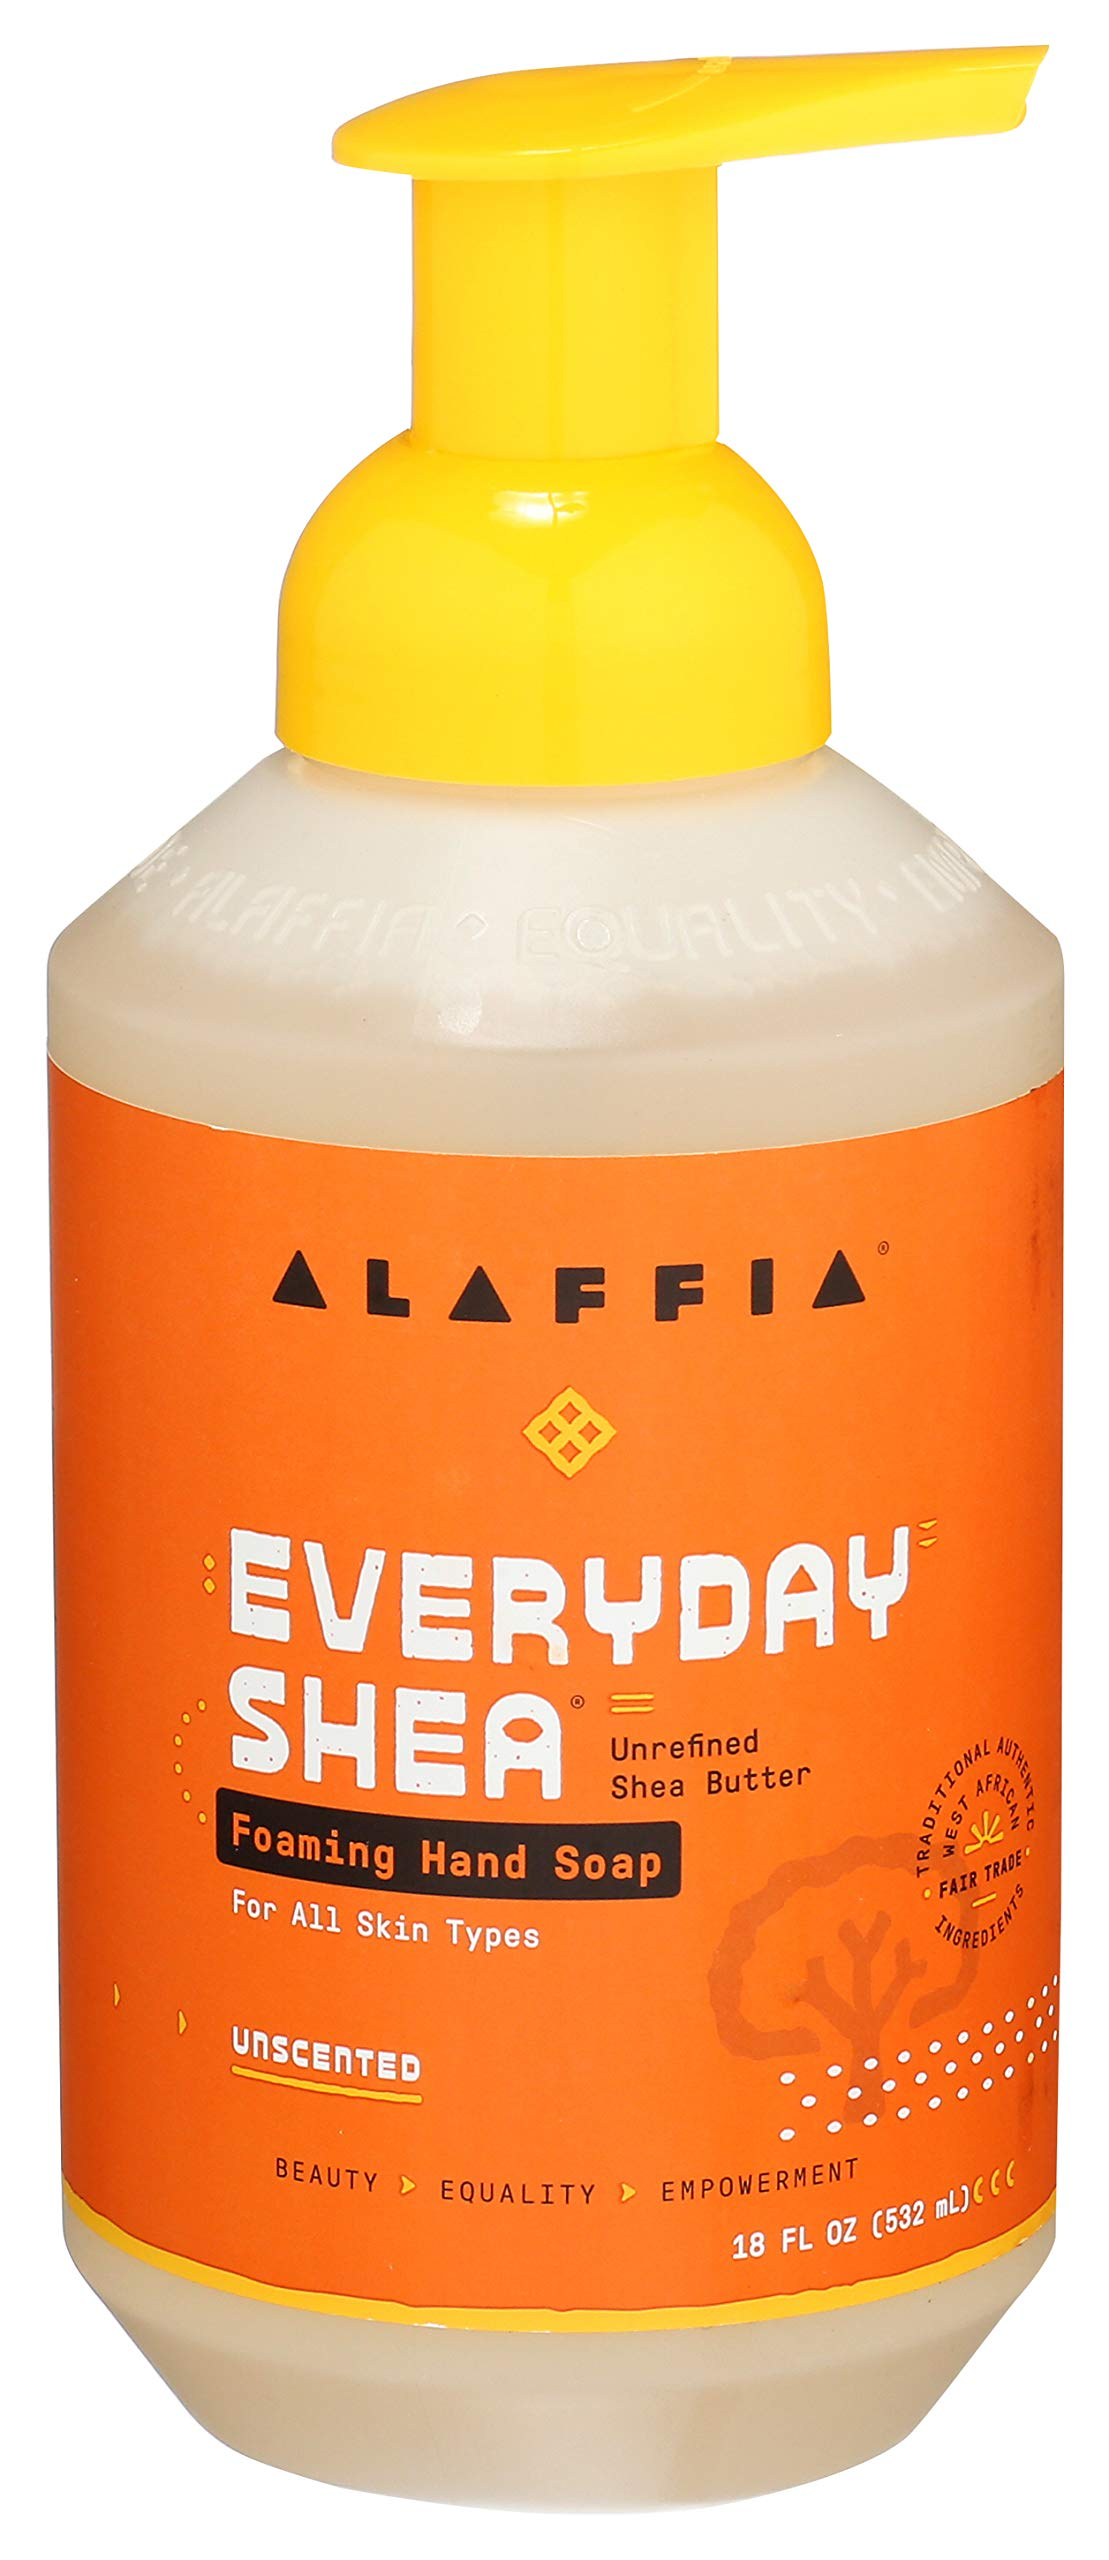 Alaffia Everyday Shea Foaming Hand Soap - For Sensitive Skin, Gently Helps Clean, Moisturize, and Soften Hands with Shea Butter, Neem, and Coconut Oil, Fair Trade, Unscented, 18 Ounces